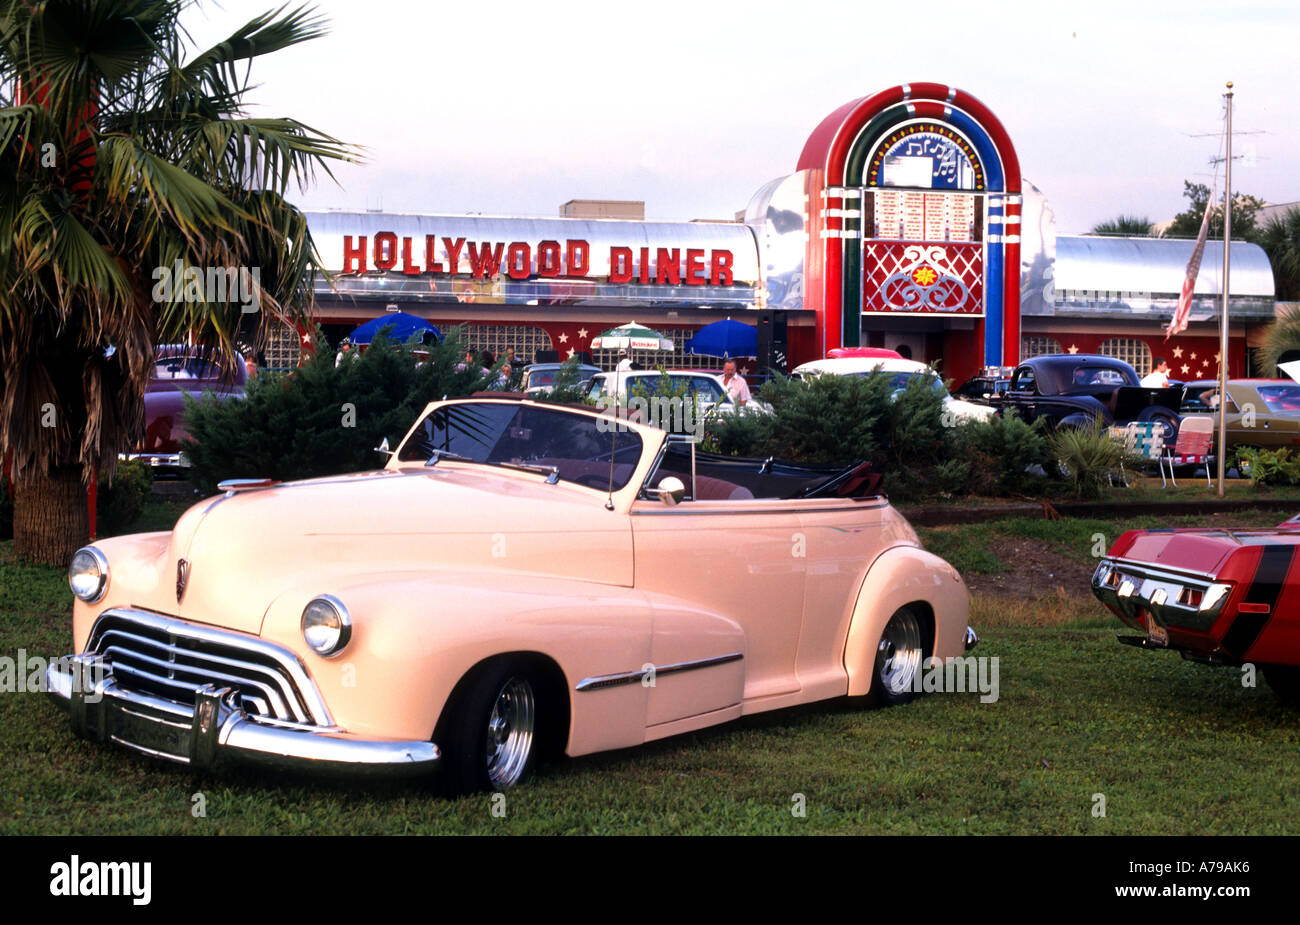 Classic Car Hollywood Diner Orlando Florida old timers Stock